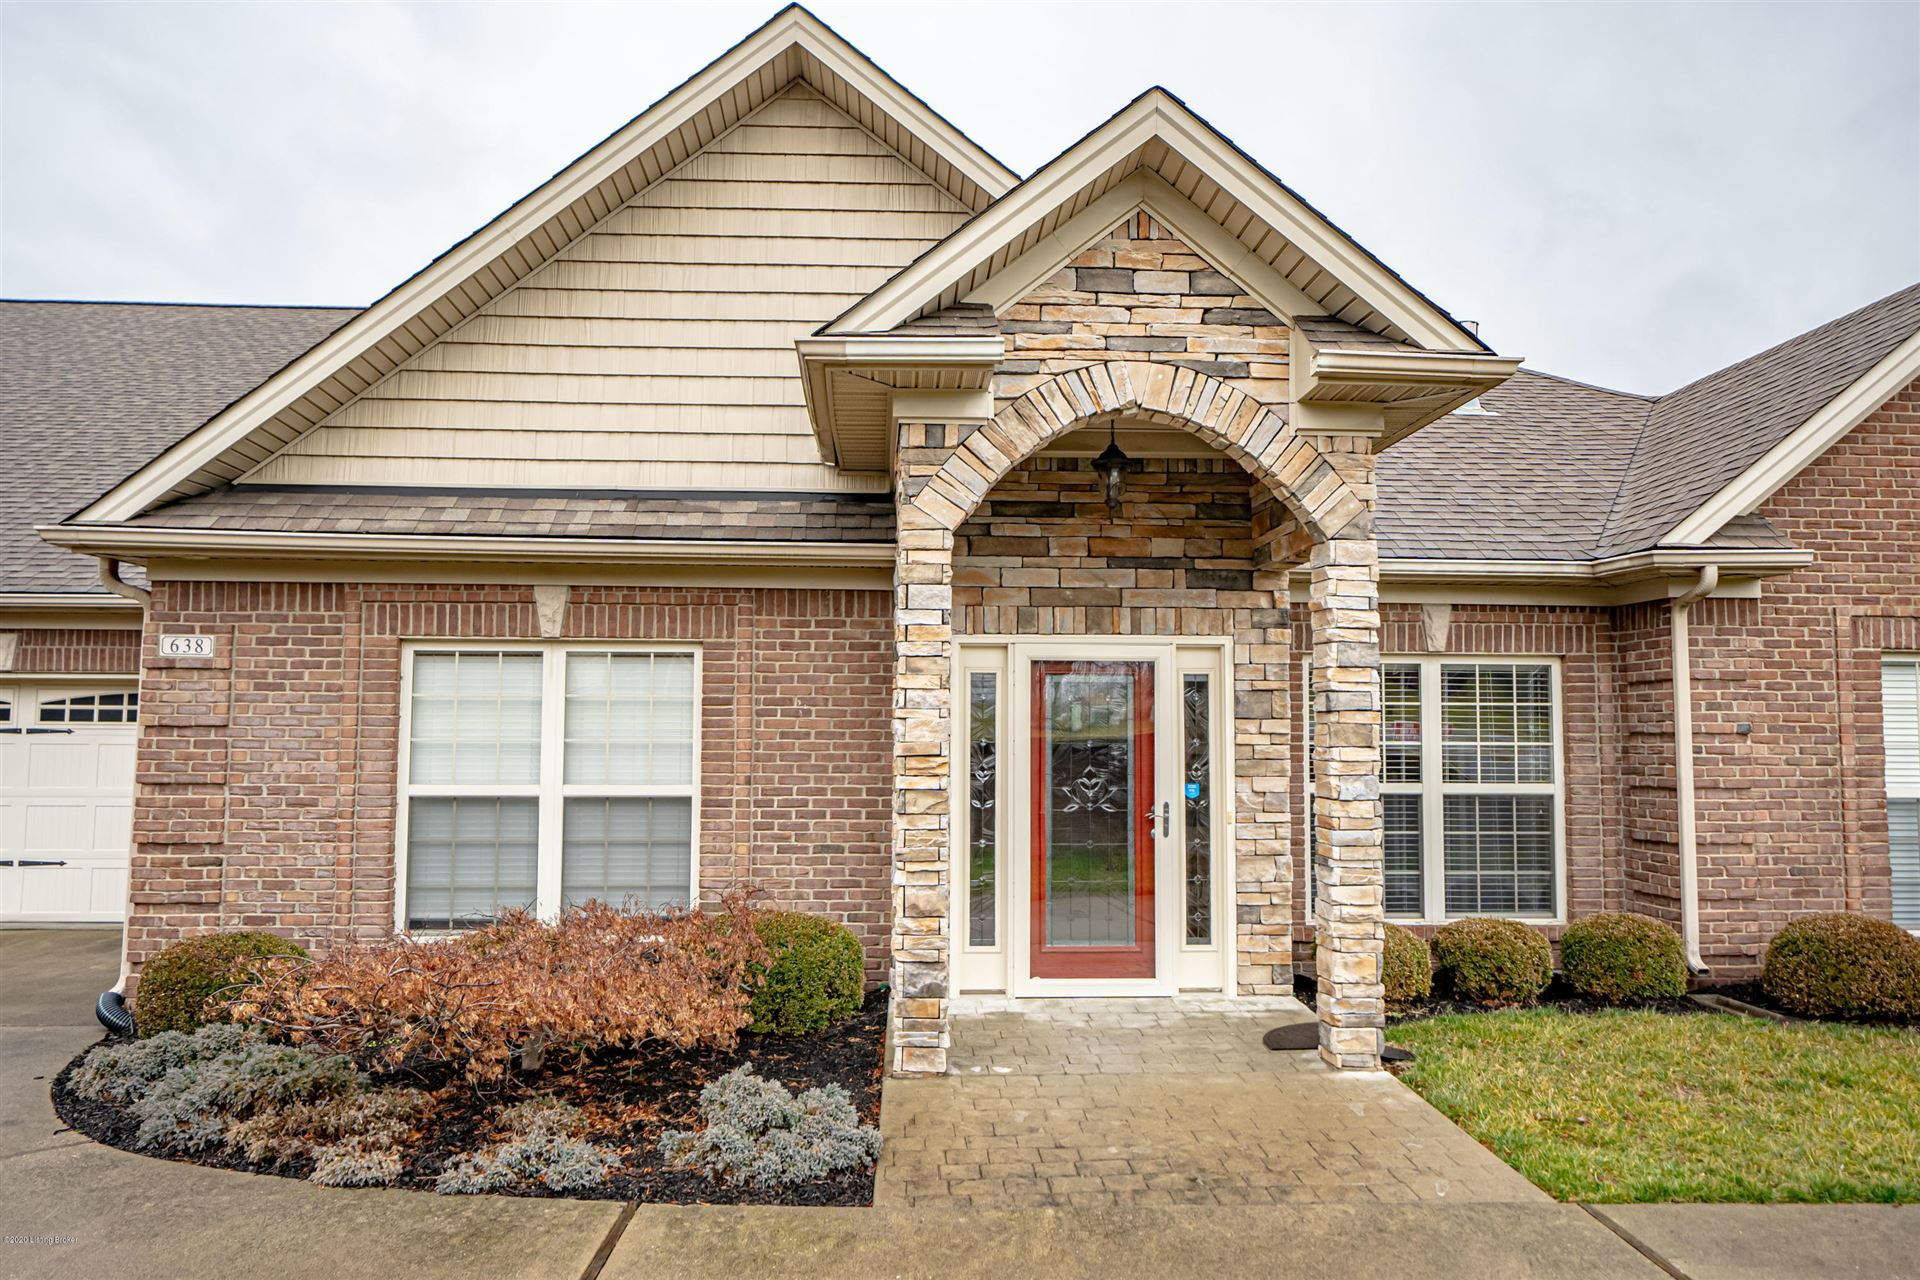 Property Image Of 638 Shawnee Rd In Shelbyville, Ky